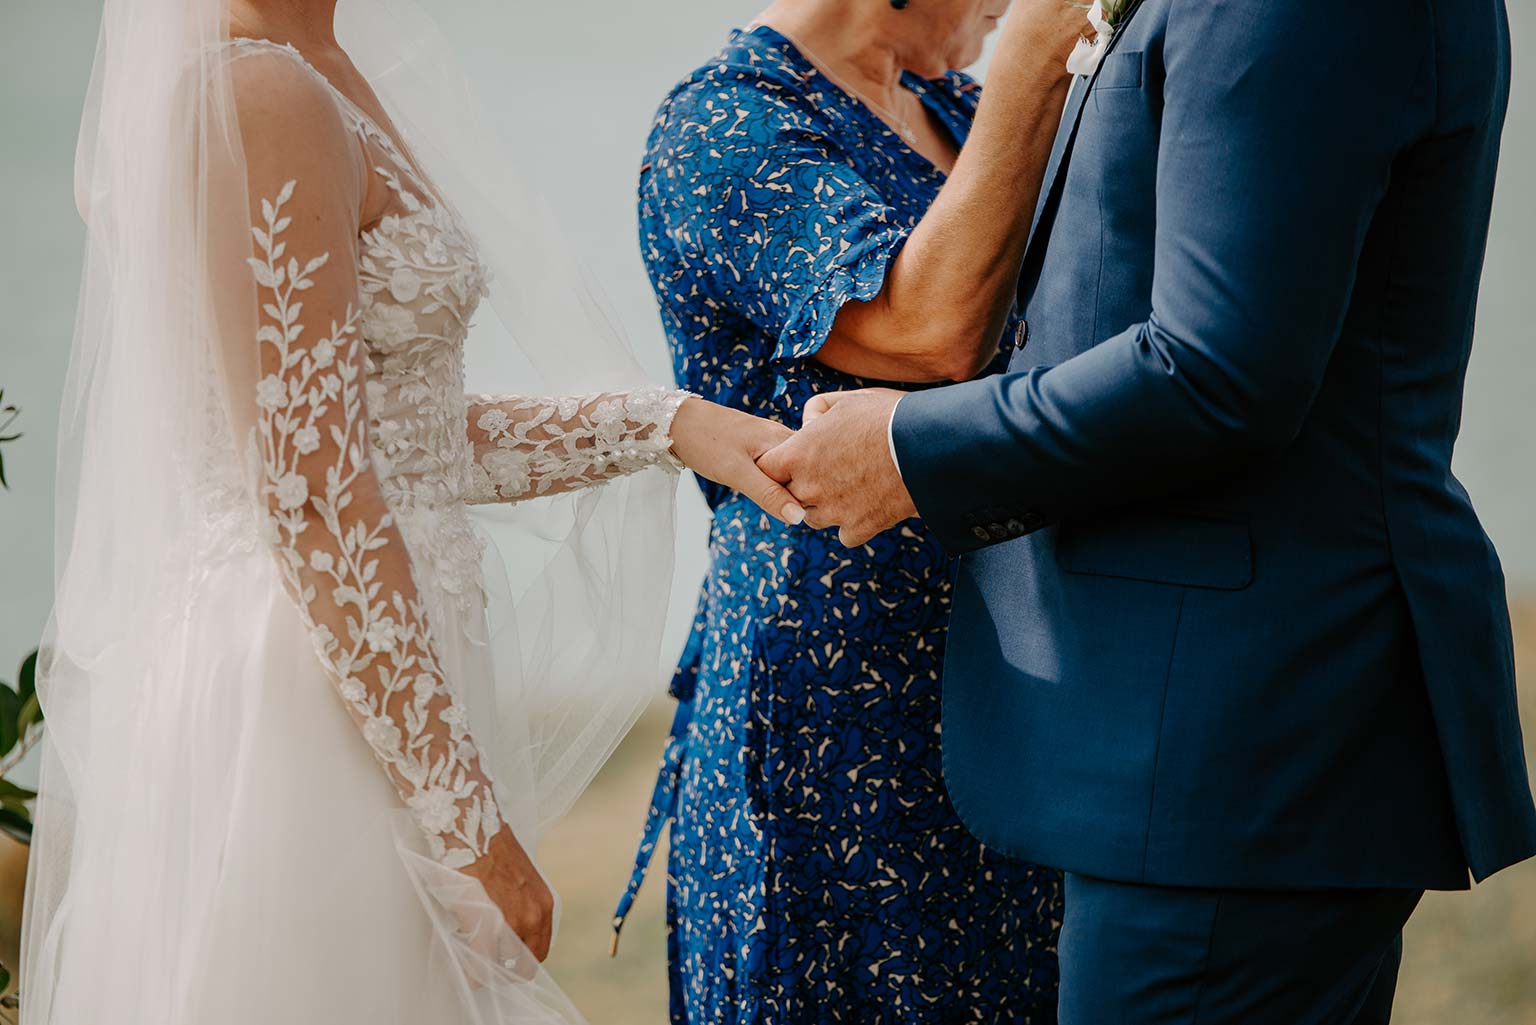 Vinka Design Features Real Weddings - bride and groom exchange rings - bride wearing a bespoke Makaira gown with silk-chiffon and tulle overskirt giving her a beautiful train which could be removed later on to reveal a floor length party dress